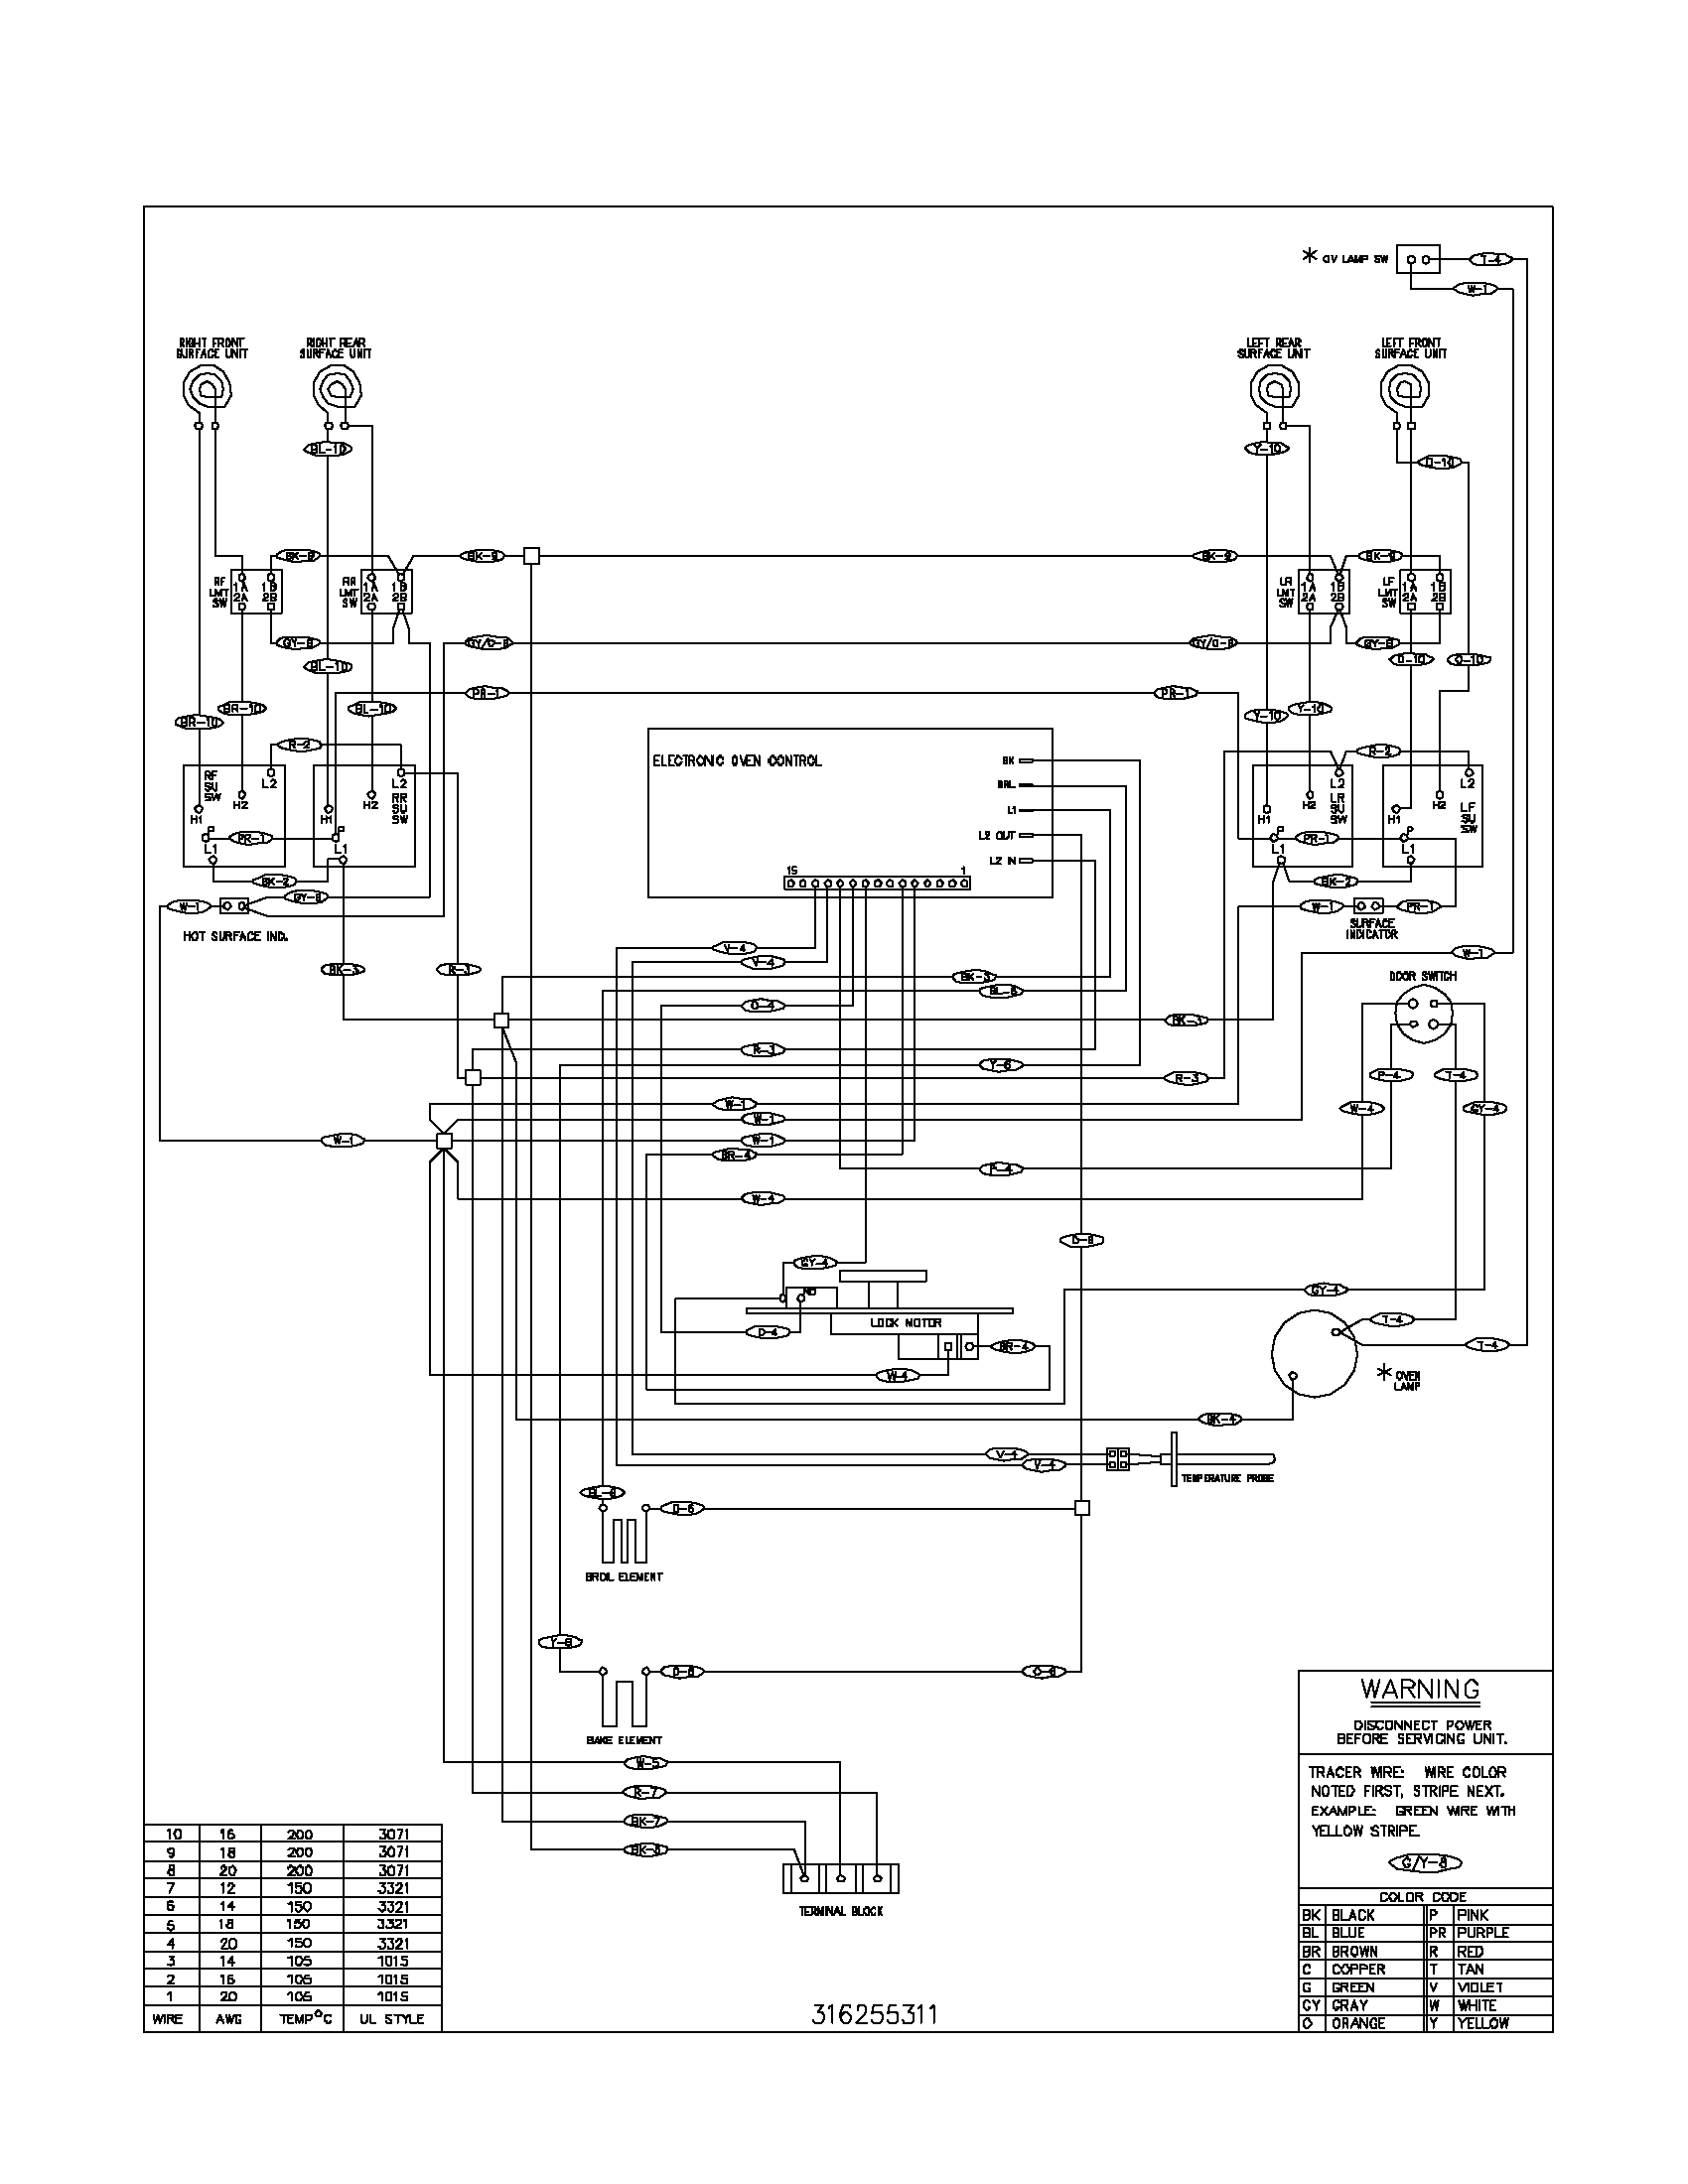 wiring diagram parts?resize\\\\\\\\\\\\\\\\\\\\\\\\\\\\\\\\\\\\\\\\\\\\\\\=665%2C861\\\\\\\\\\\\\\\\\\\\\\\\\\\\\\\\\\\\\\\\\\\\\\\&ssl\\\\\\\\\\\\\\\\\\\\\\\\\\\\\\\\\\\\\\\\\\\\\\\=1 rdx 755dz wiring diagram,dz \u2022 edmiracle co  at crackthecode.co